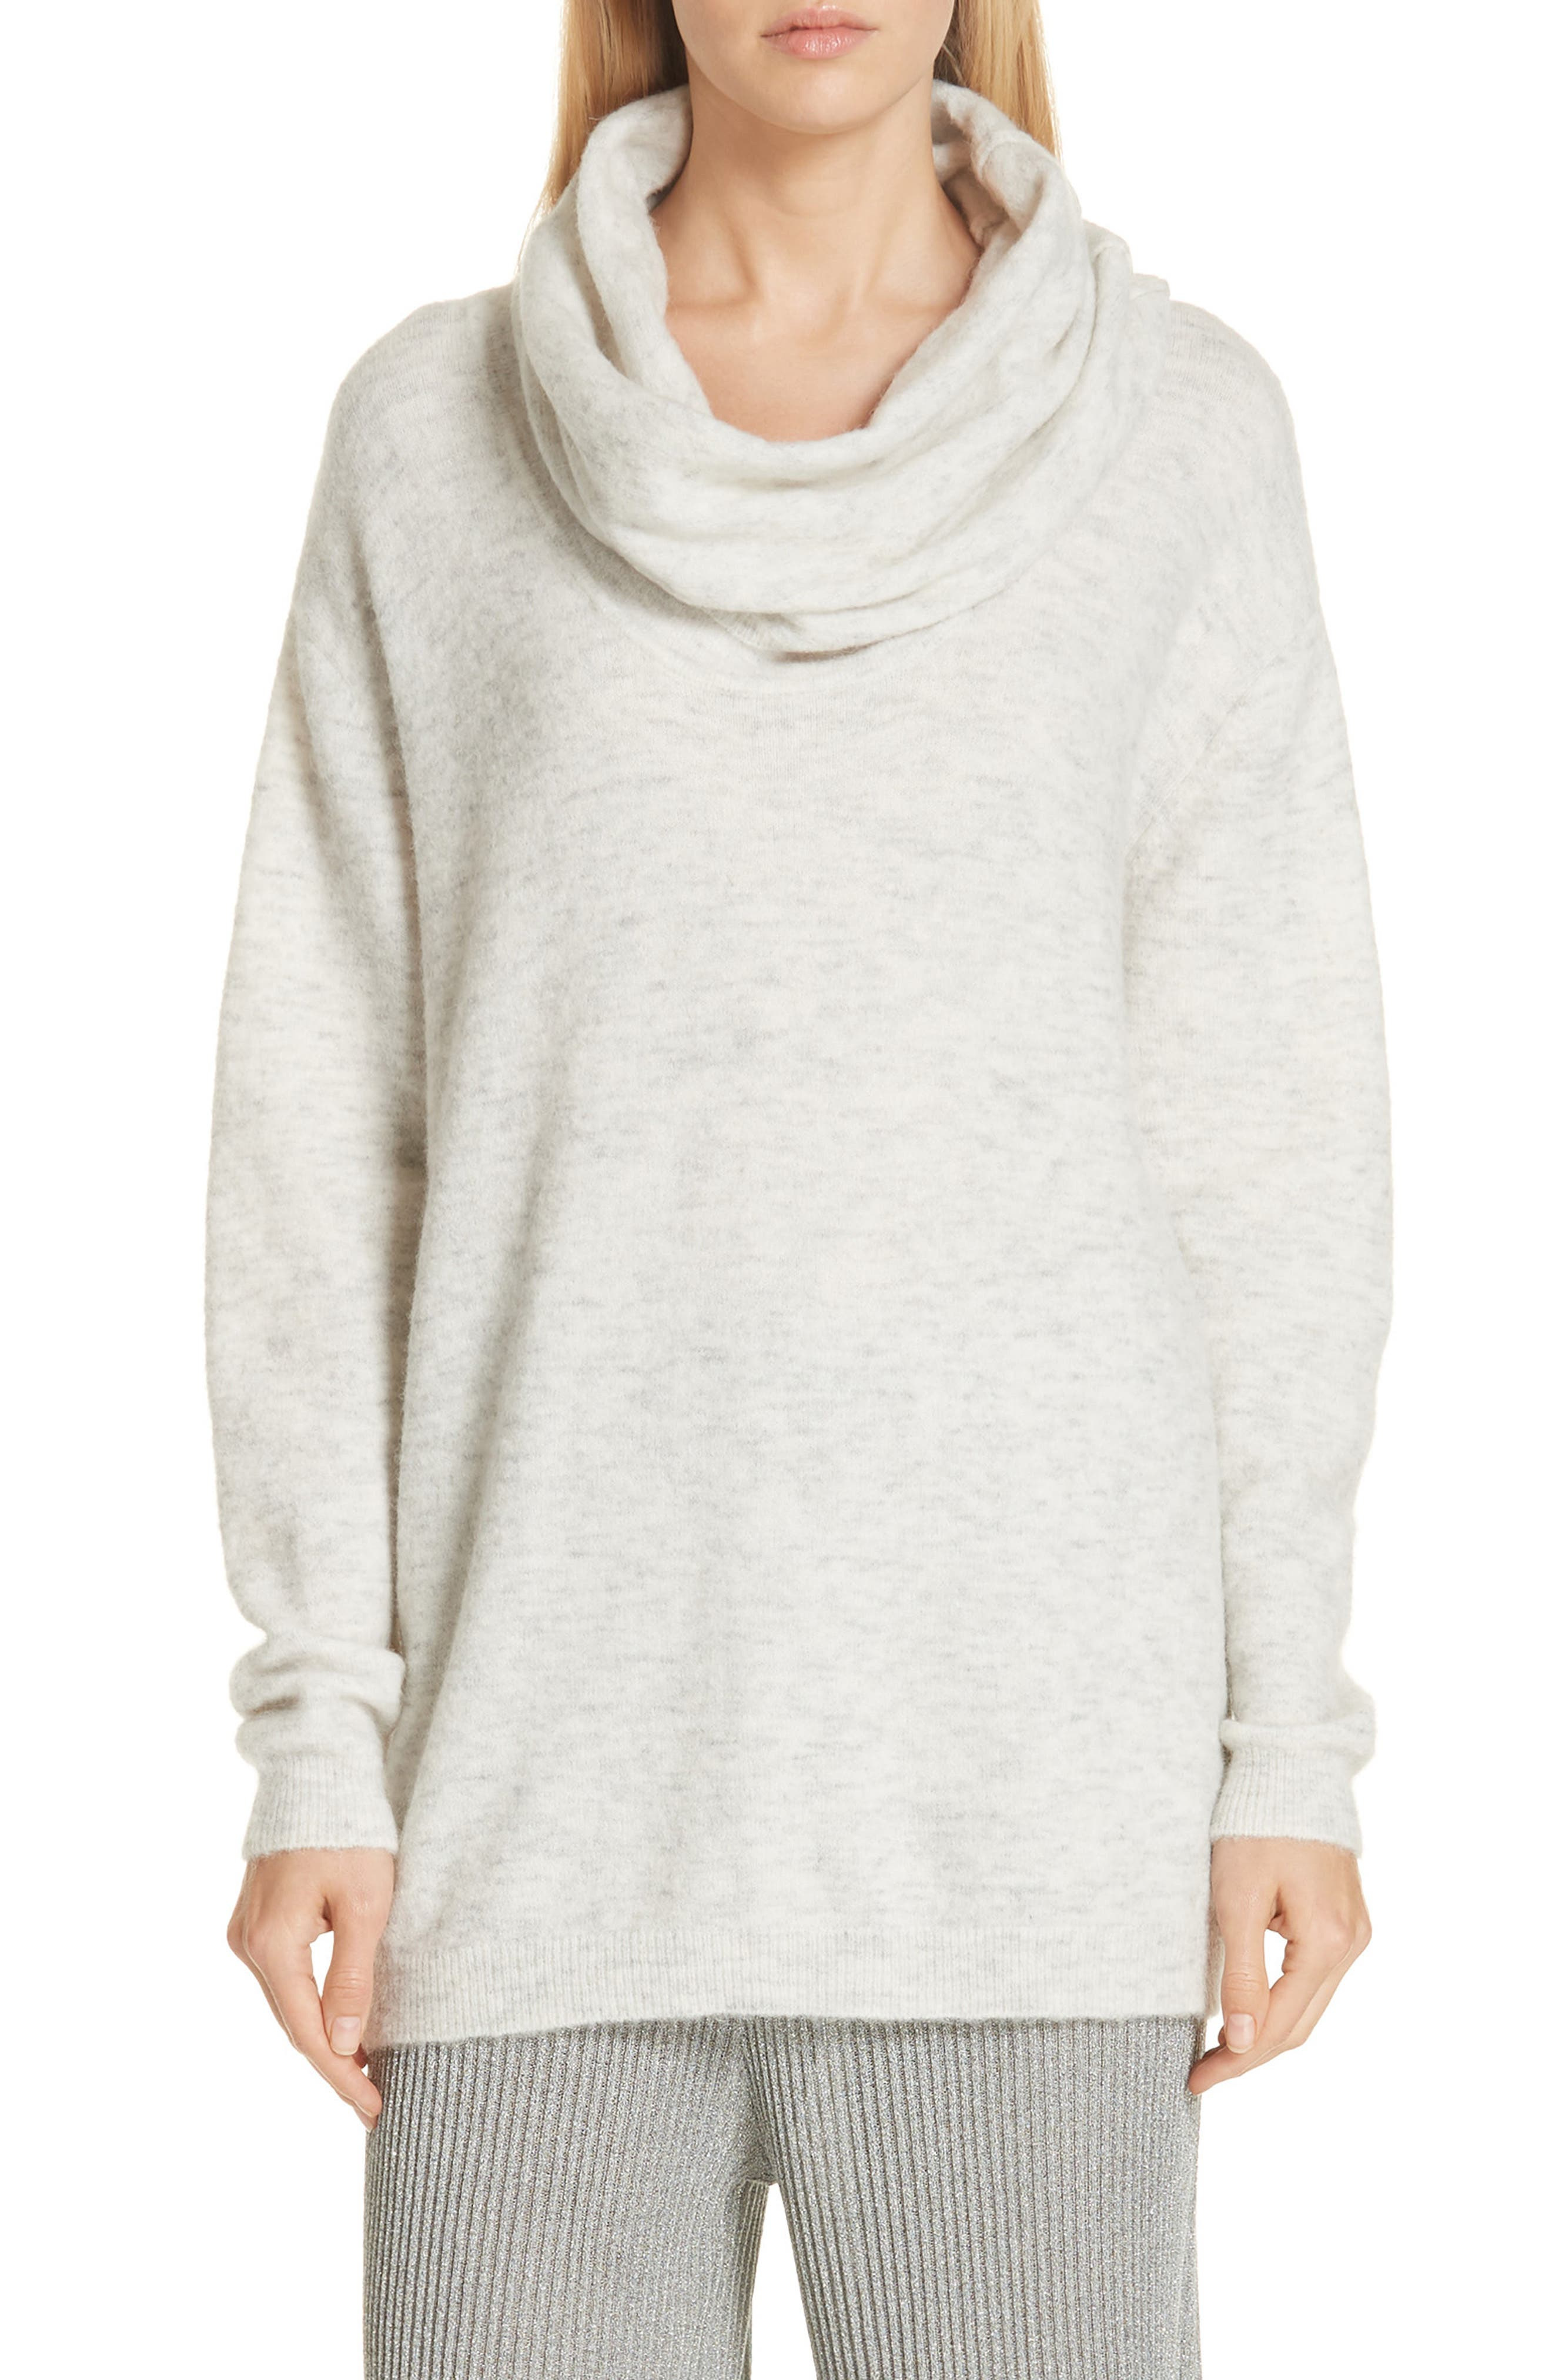 Mineral Cowl Neck Sweater,                         Main,                         color, GREY